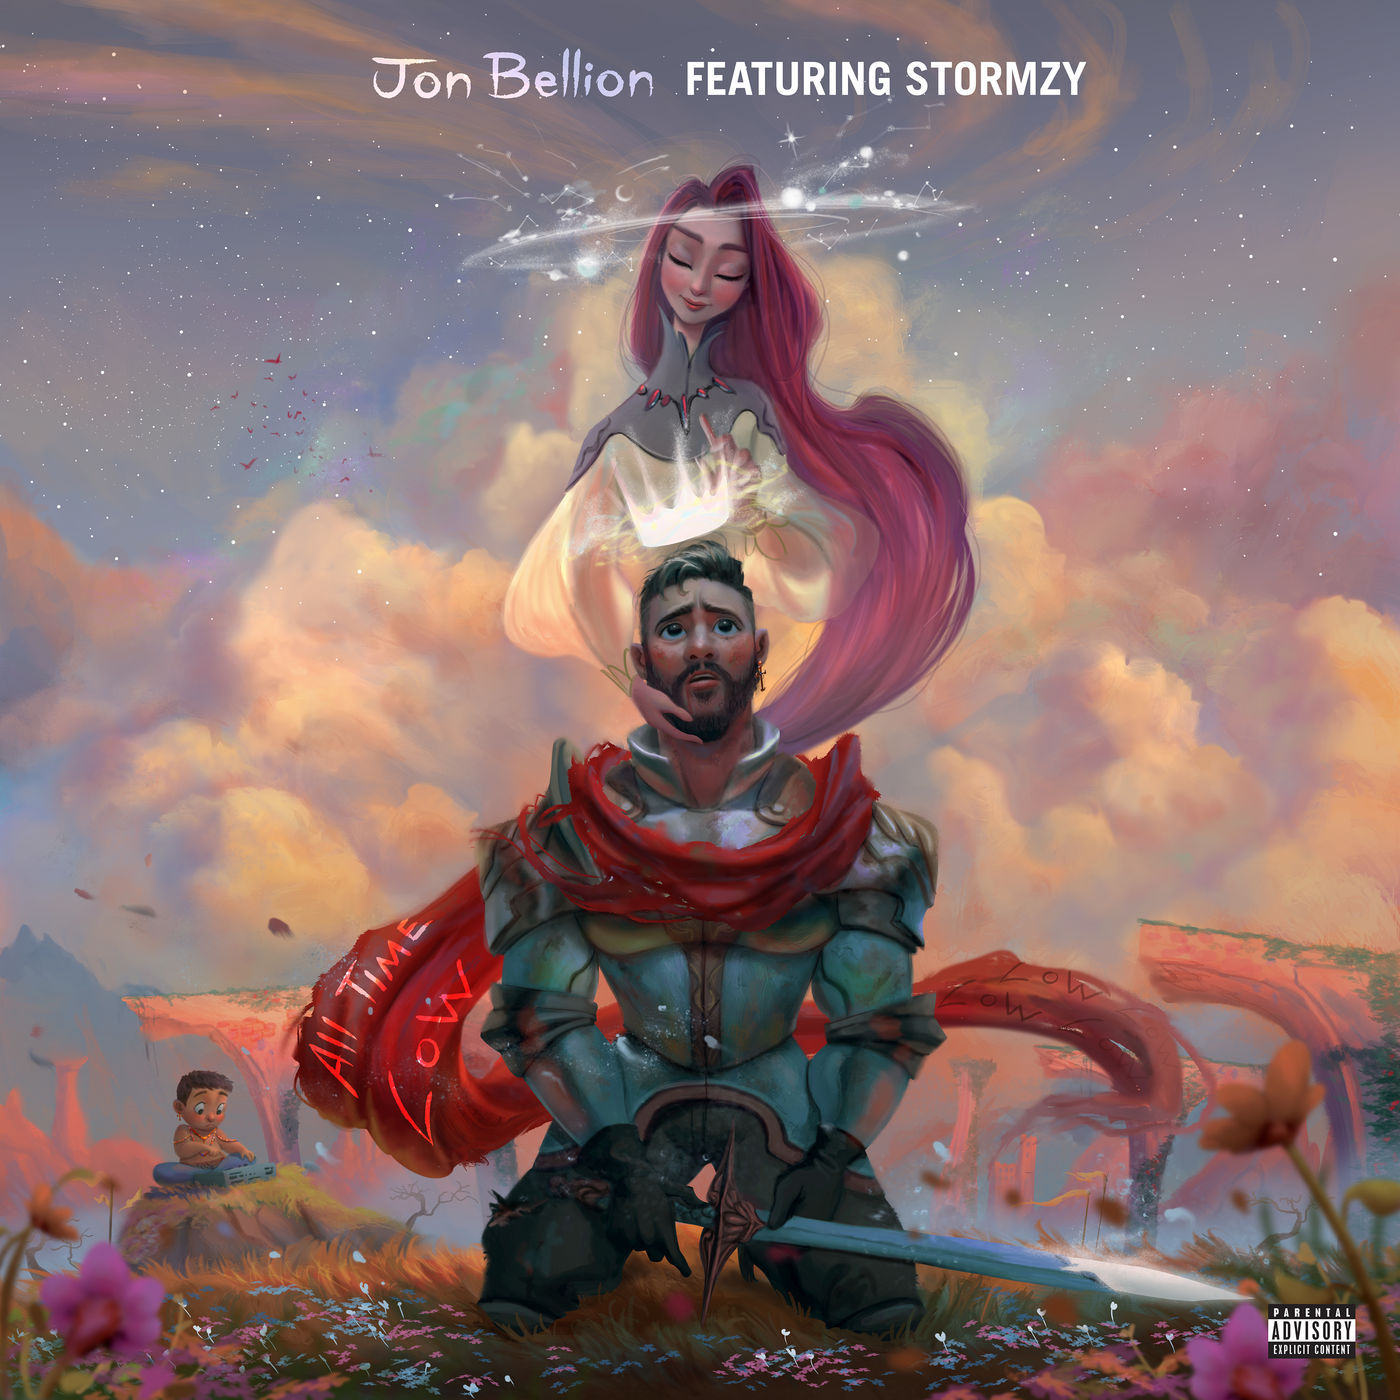 Jon Bellion - All Time Low (feat. Stormzy) - Single Cover